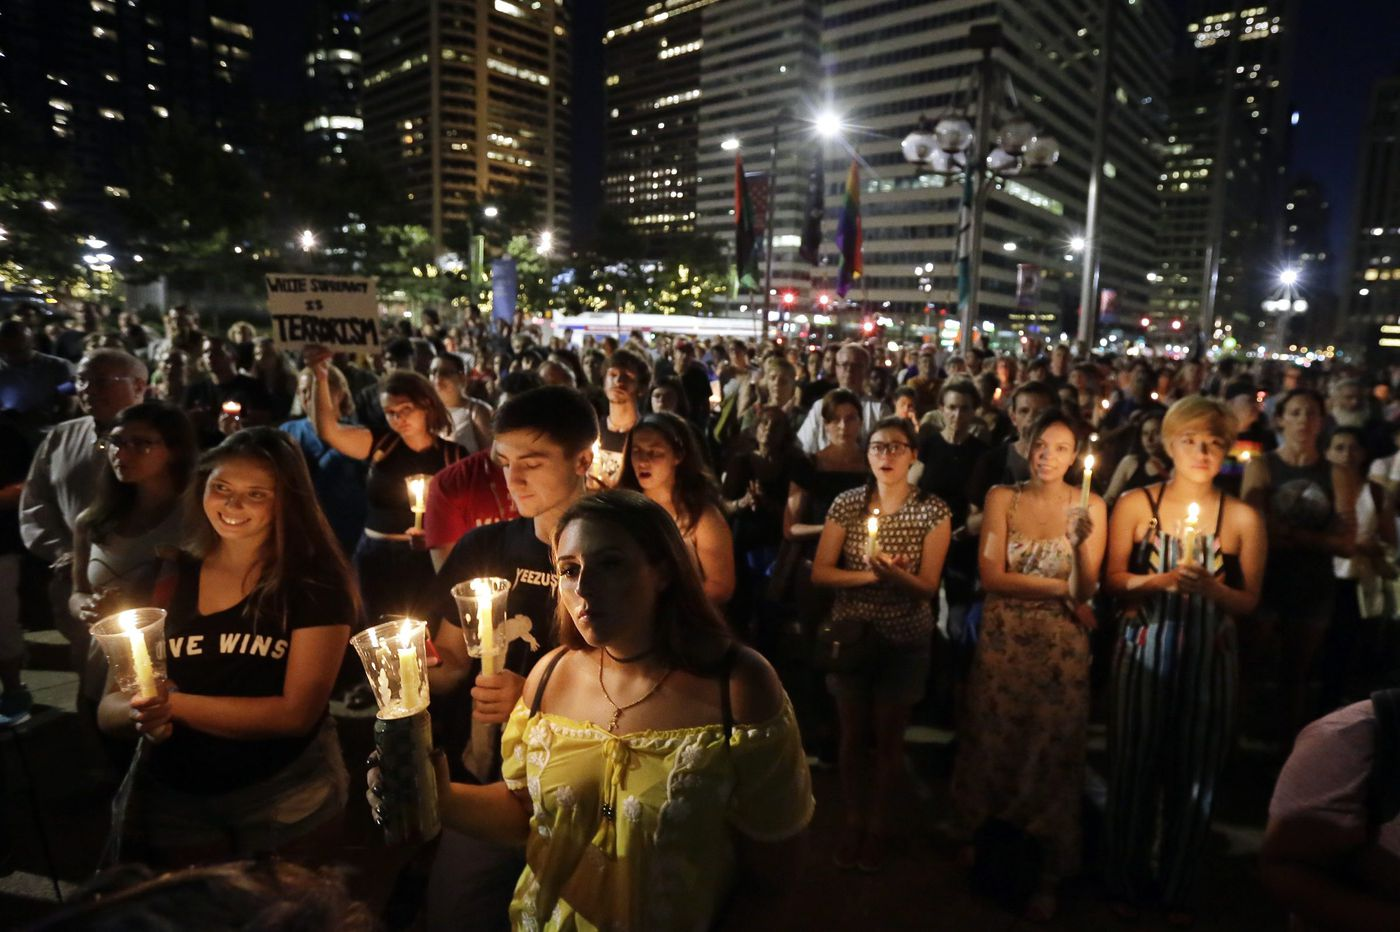 Hate has no home in Philly. What to do if you see hate and bias incidents. | Opinion